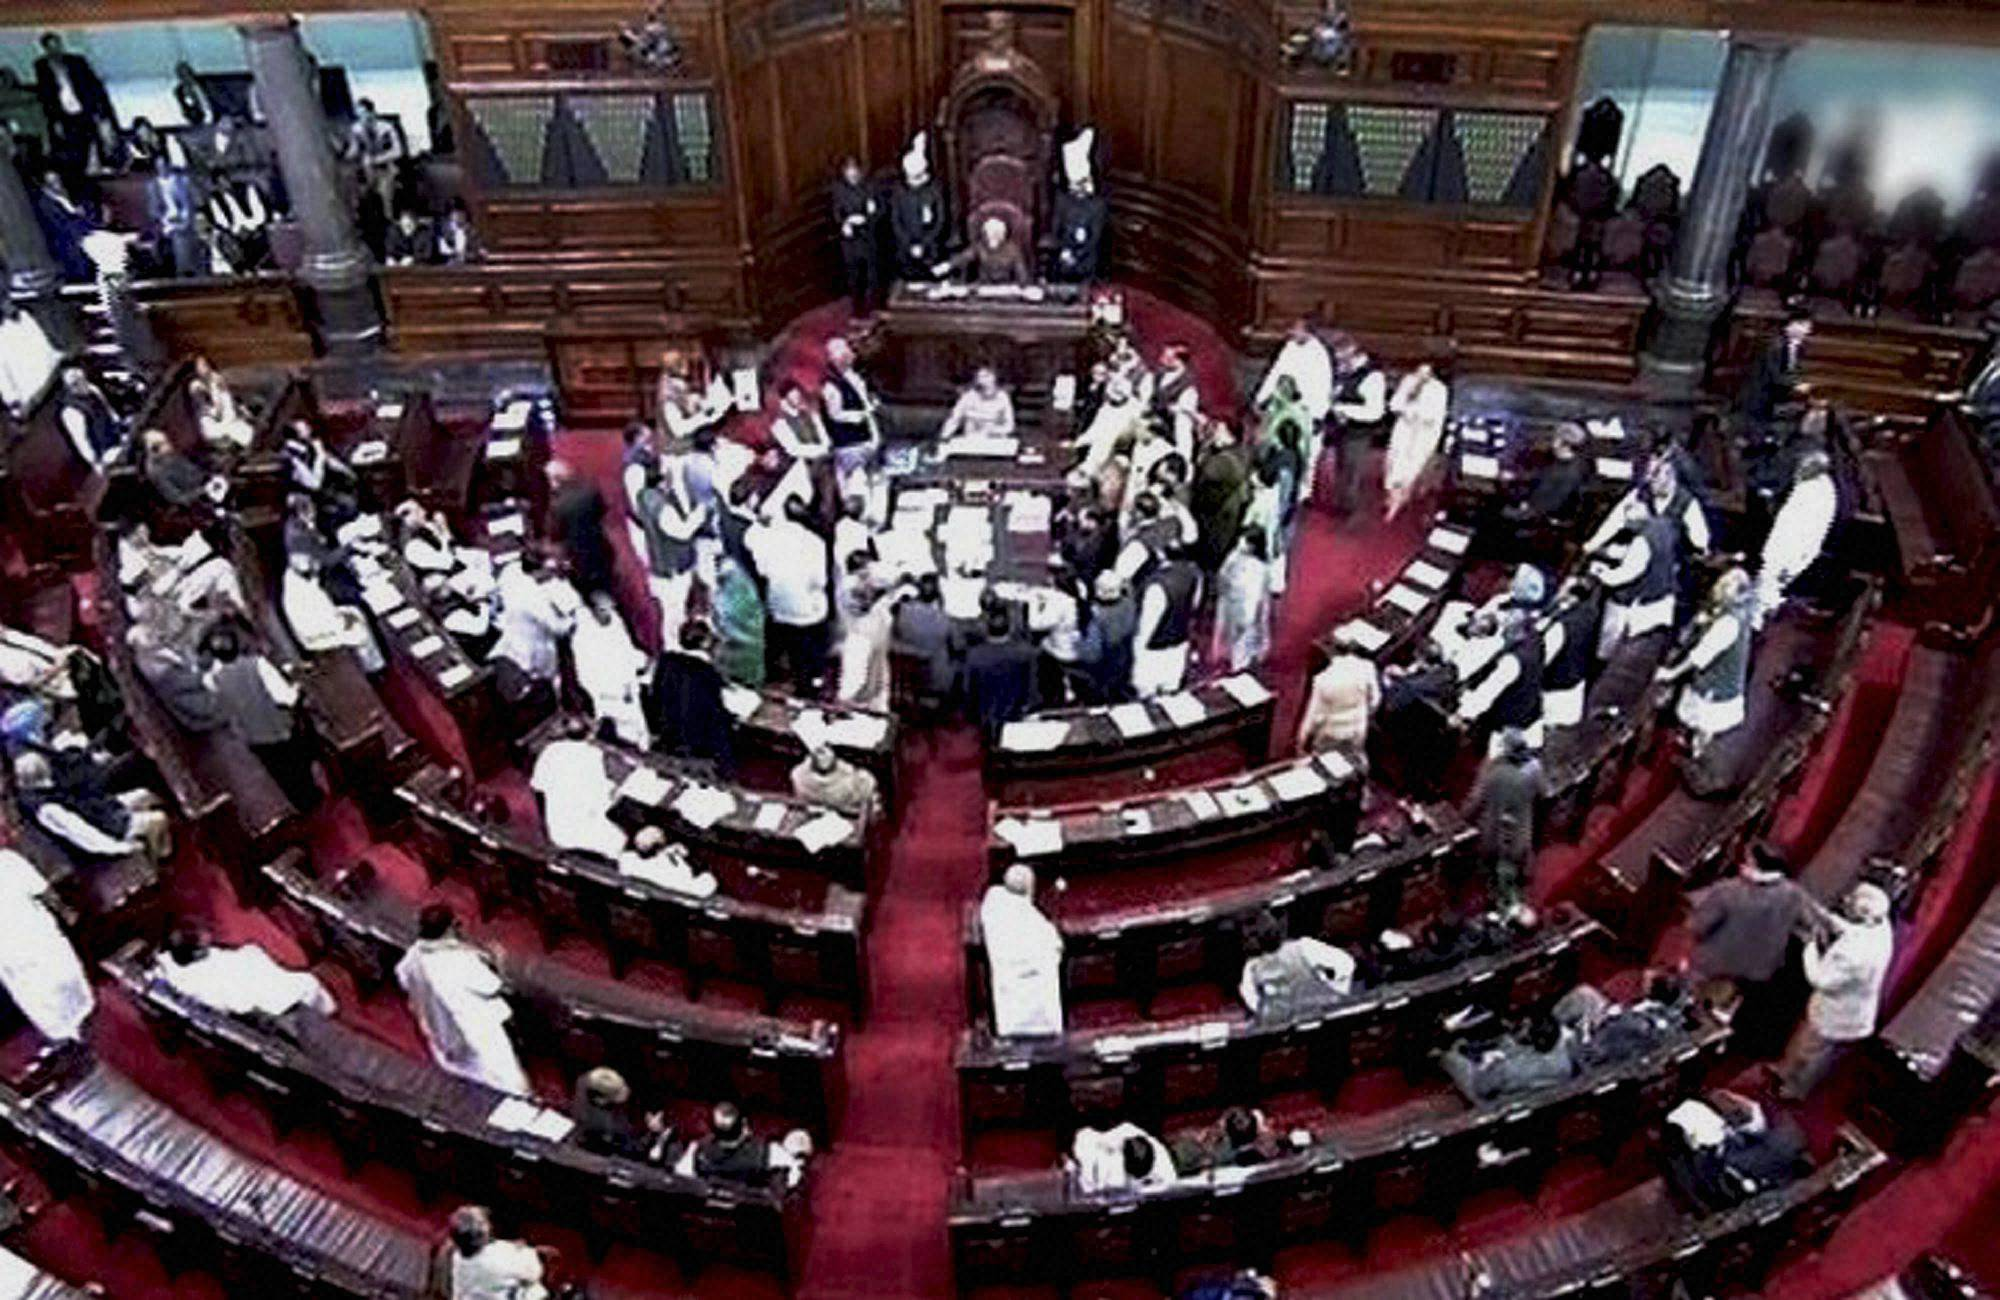 Shadow of demonetisation disruptions in Lok Sabha